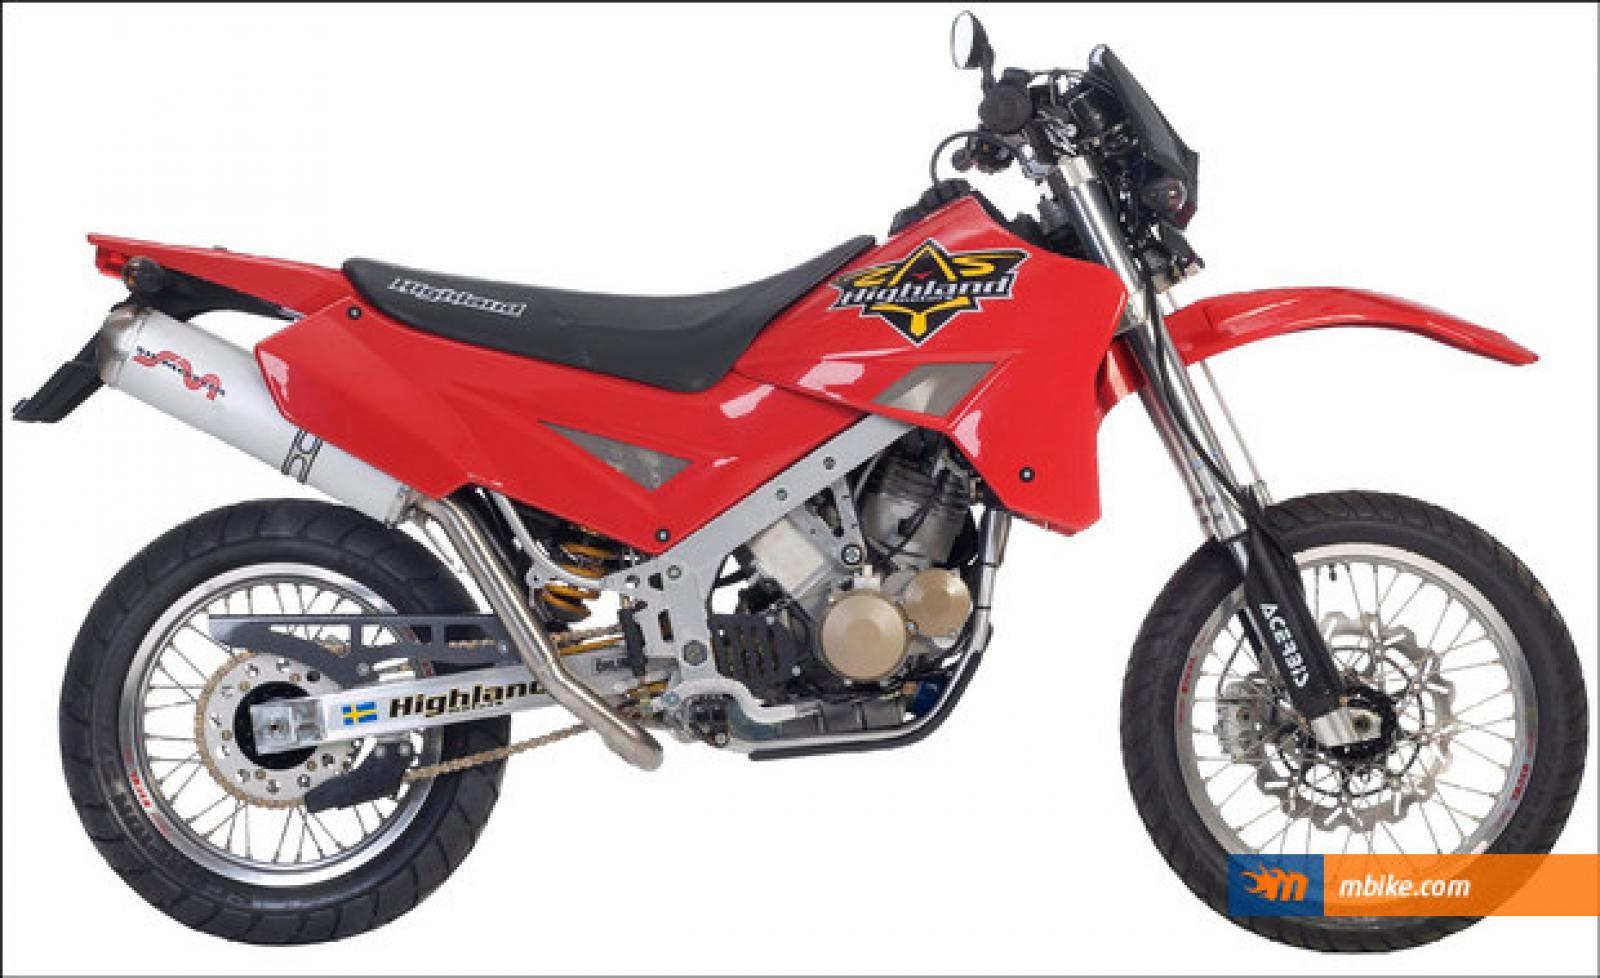 Highland 950 V2 Outback Supermoto 2005 images #97053